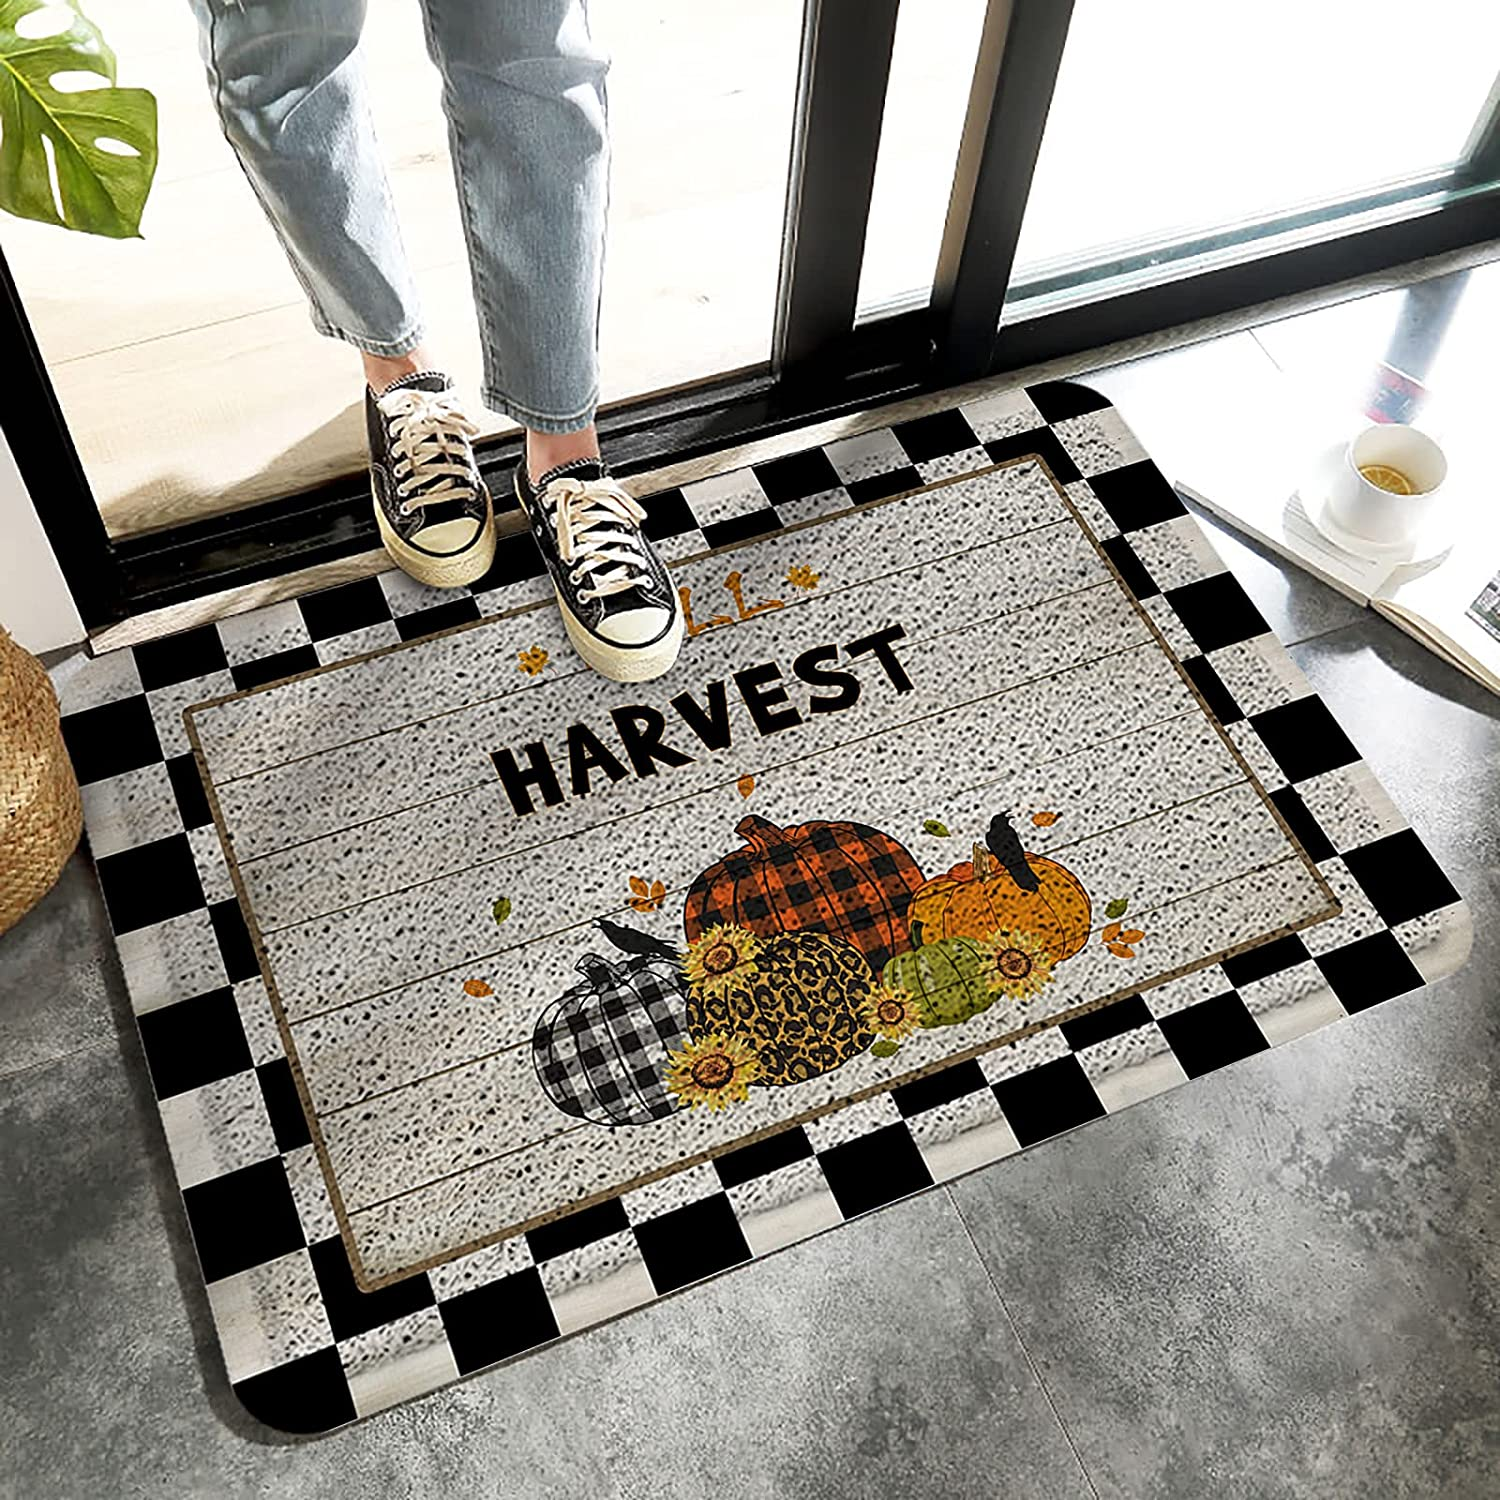 LBHAUSE Entrance Doormat Indoor New product!! Wire Ring Max 46% OFF Fall- Foot Happy Mats